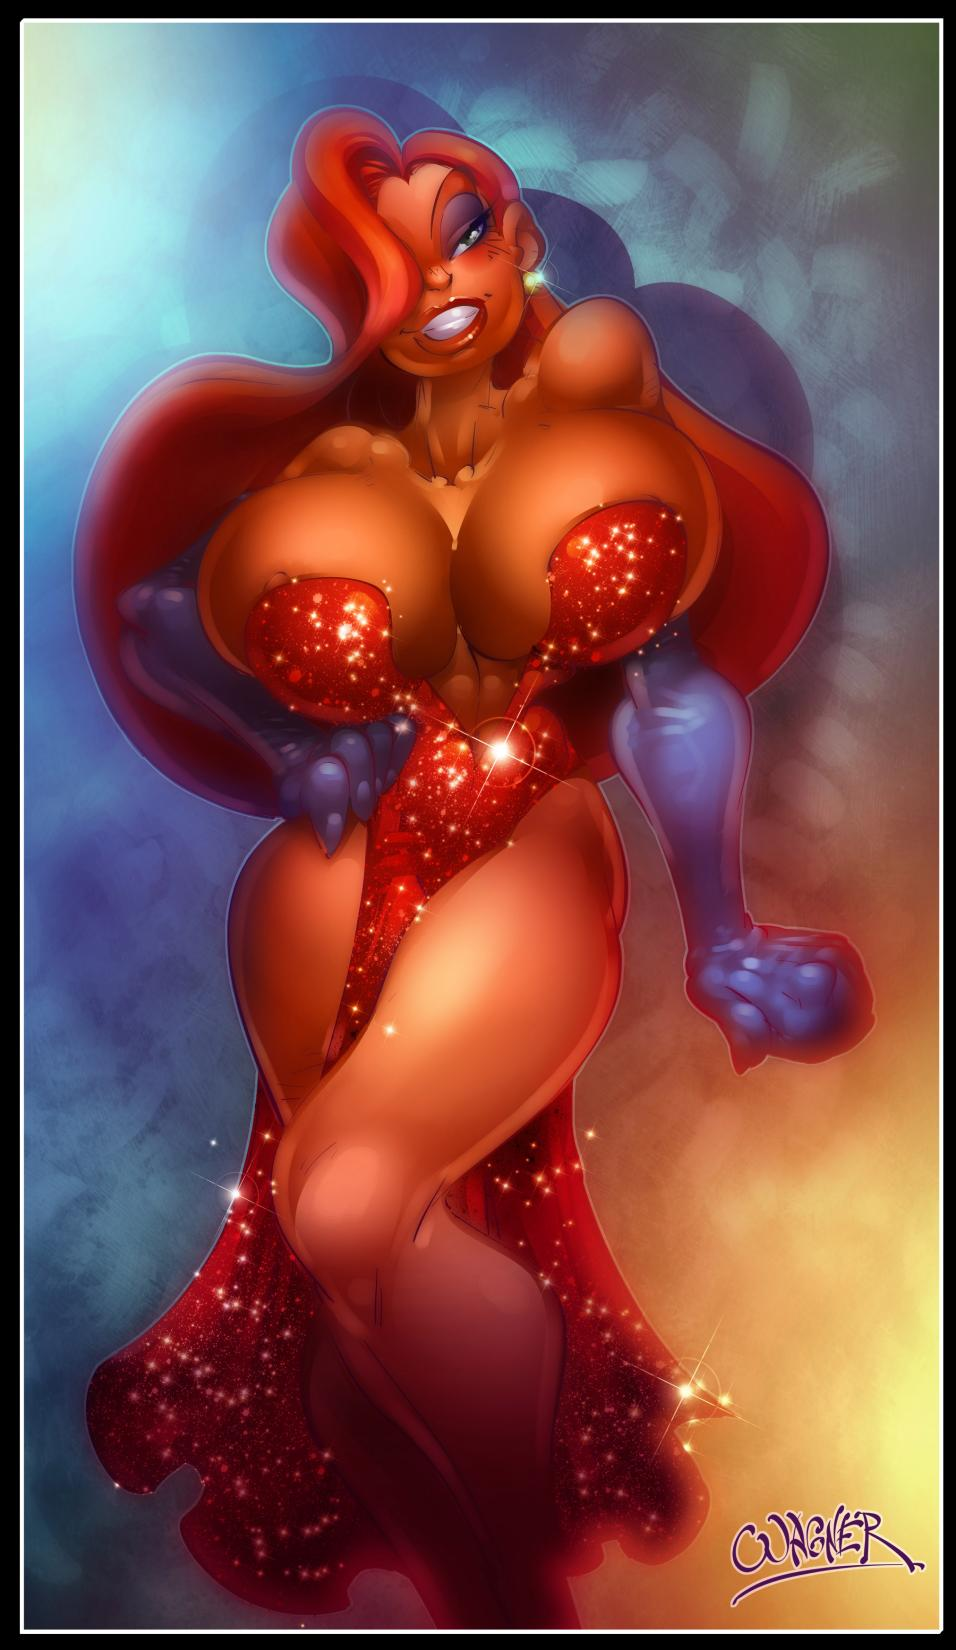 areola_slip areolae breasts bursting_breasts dark_skin erect_nipples huge_breasts jessica_rabbit long_gloves nipples red_hair wagner who_framed_roger_rabbit